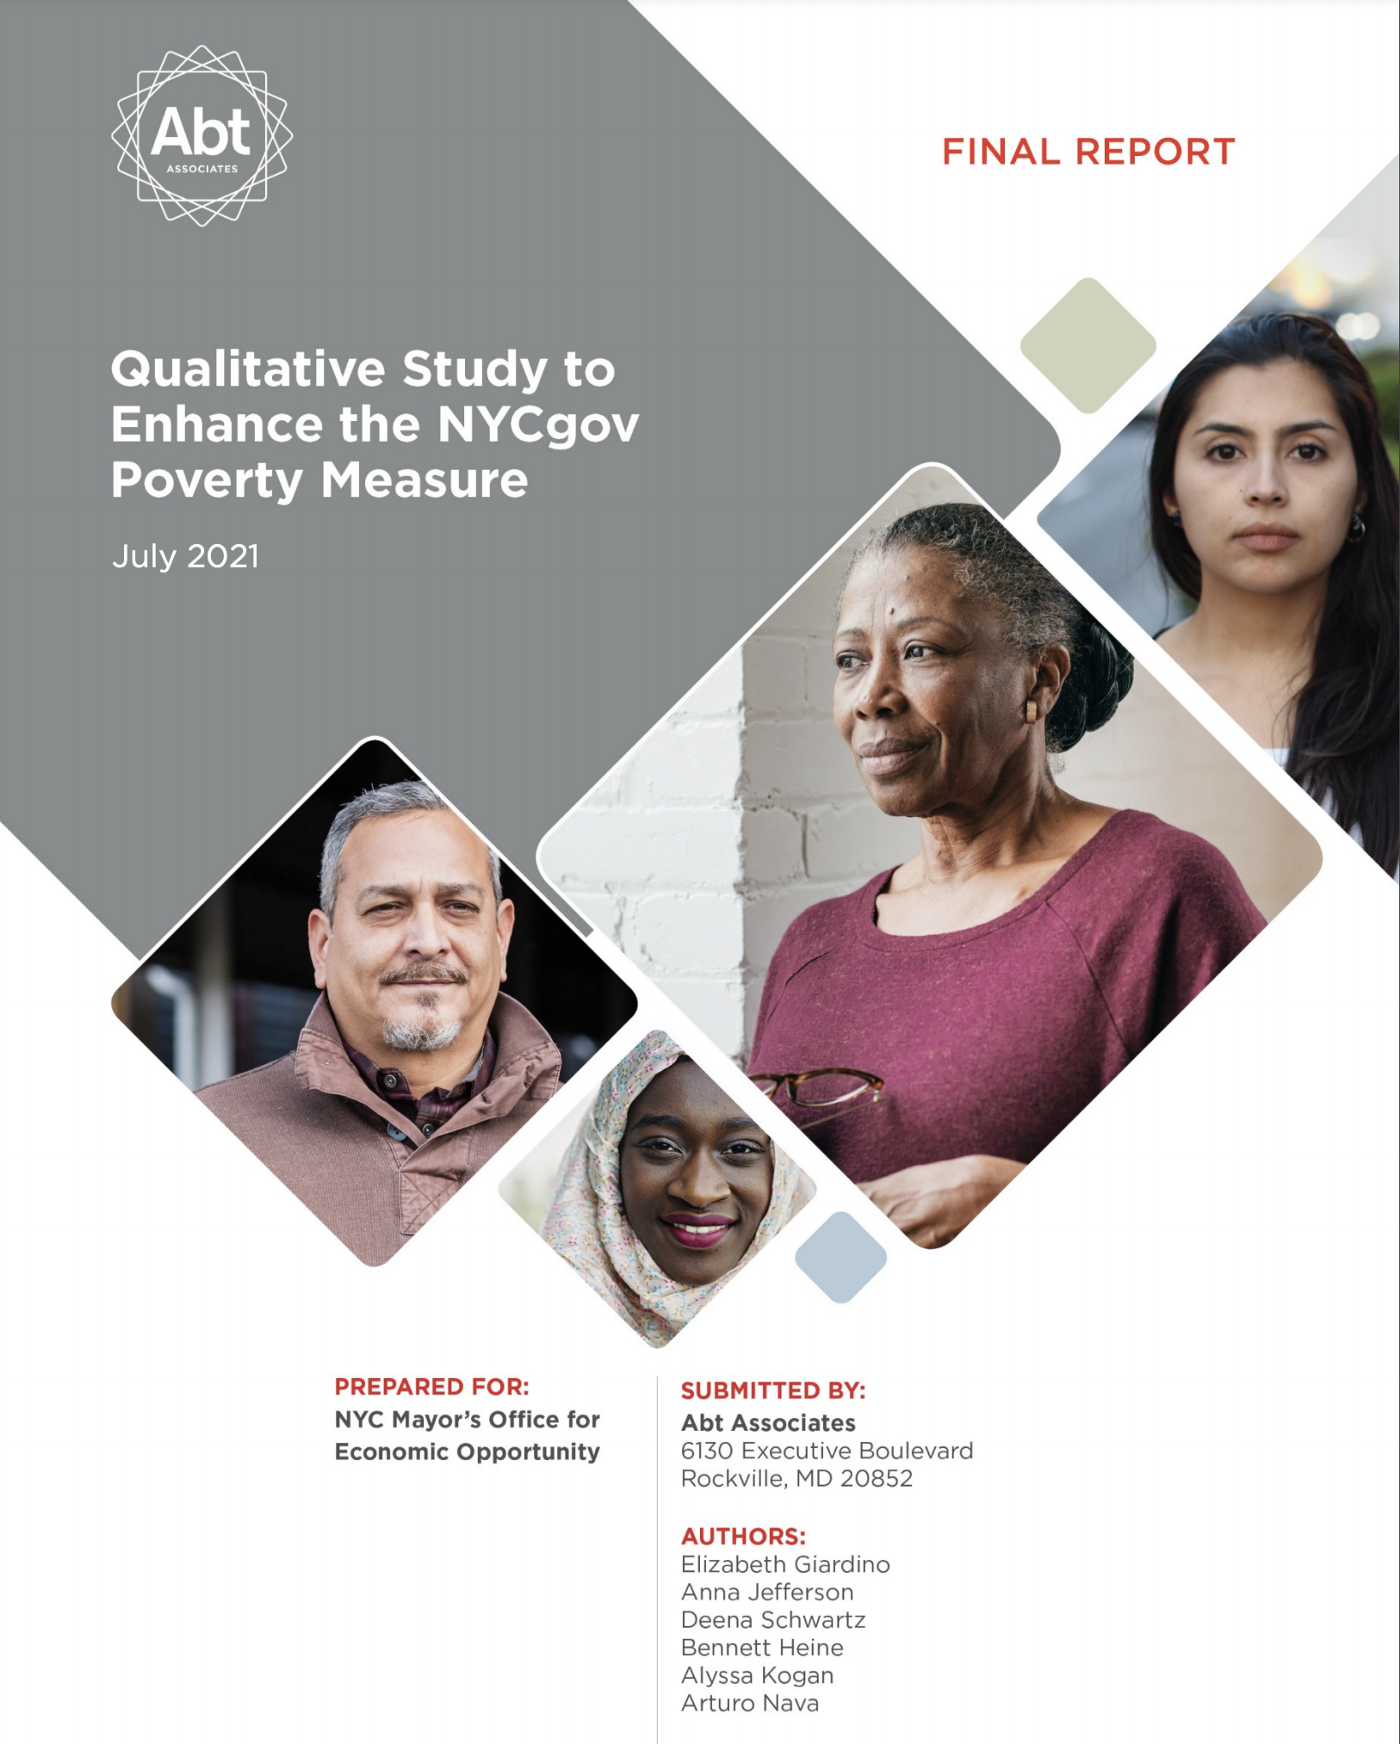 The image of the report cover of the Qualitative Study to Enhance the NYCgov Poverty Measure. There are diverse headshots of 4 individuals on the cover.